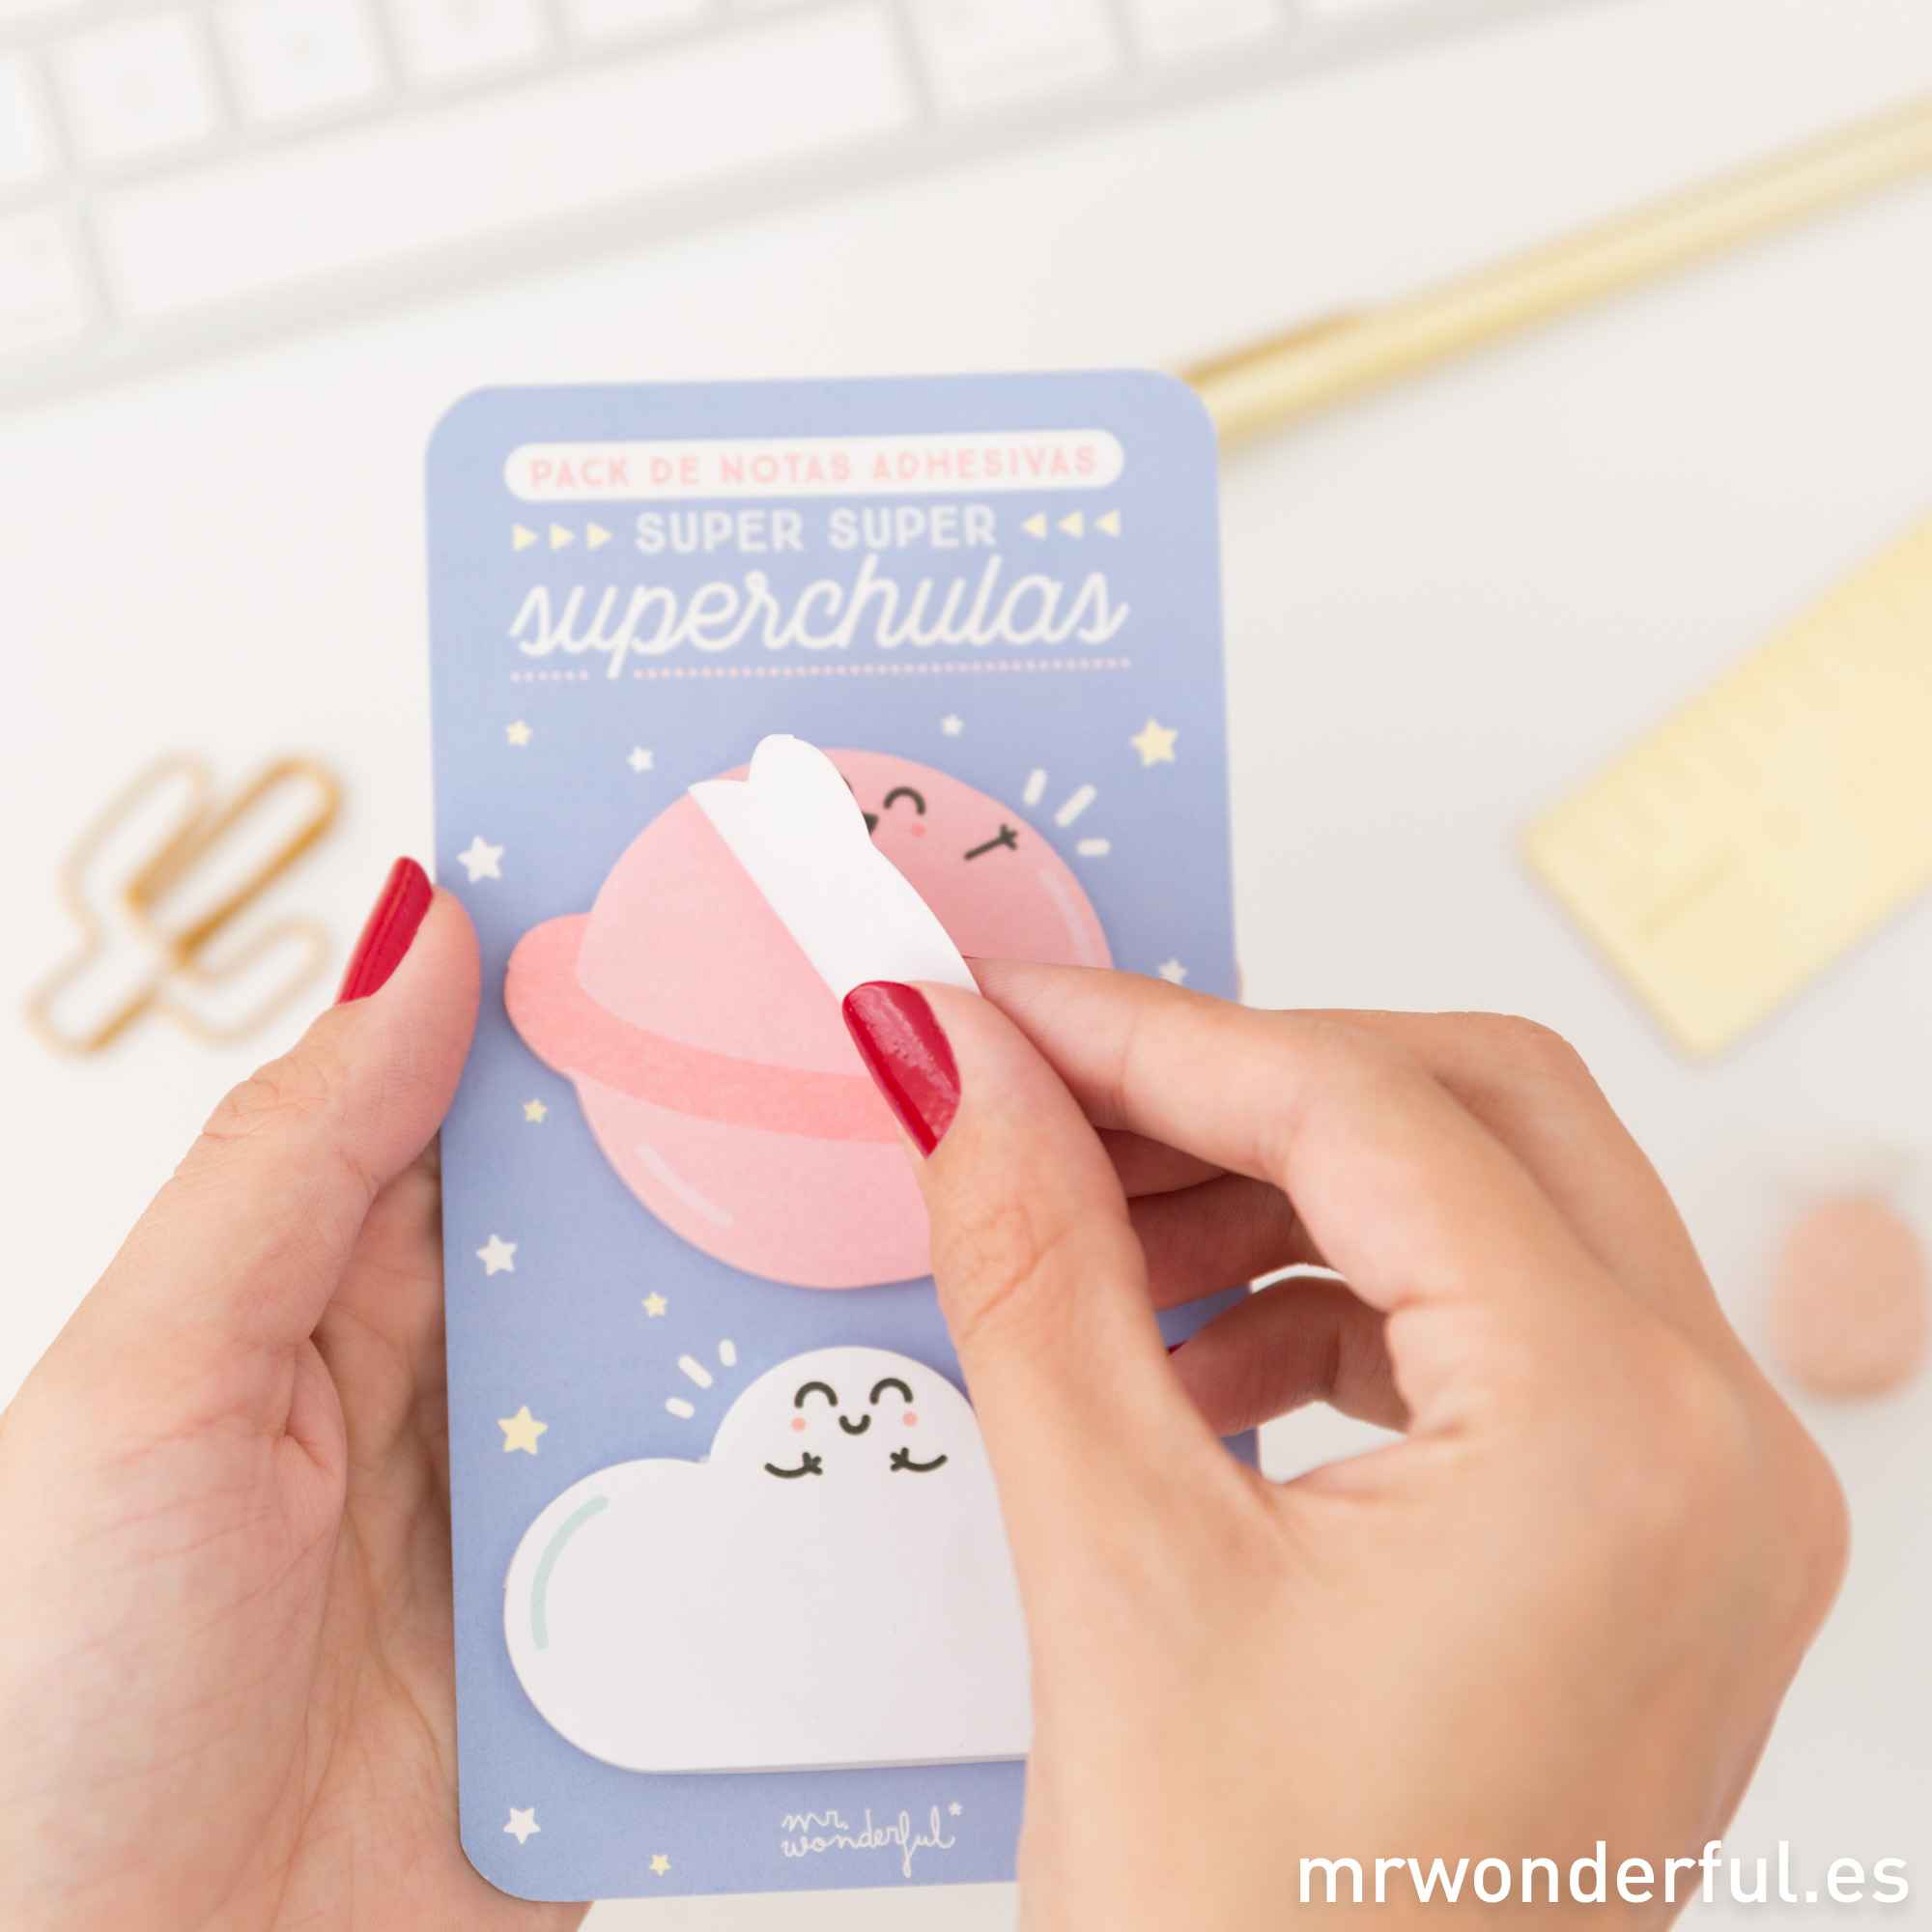 Pack de notas adhesivas de Mr. Wonderful